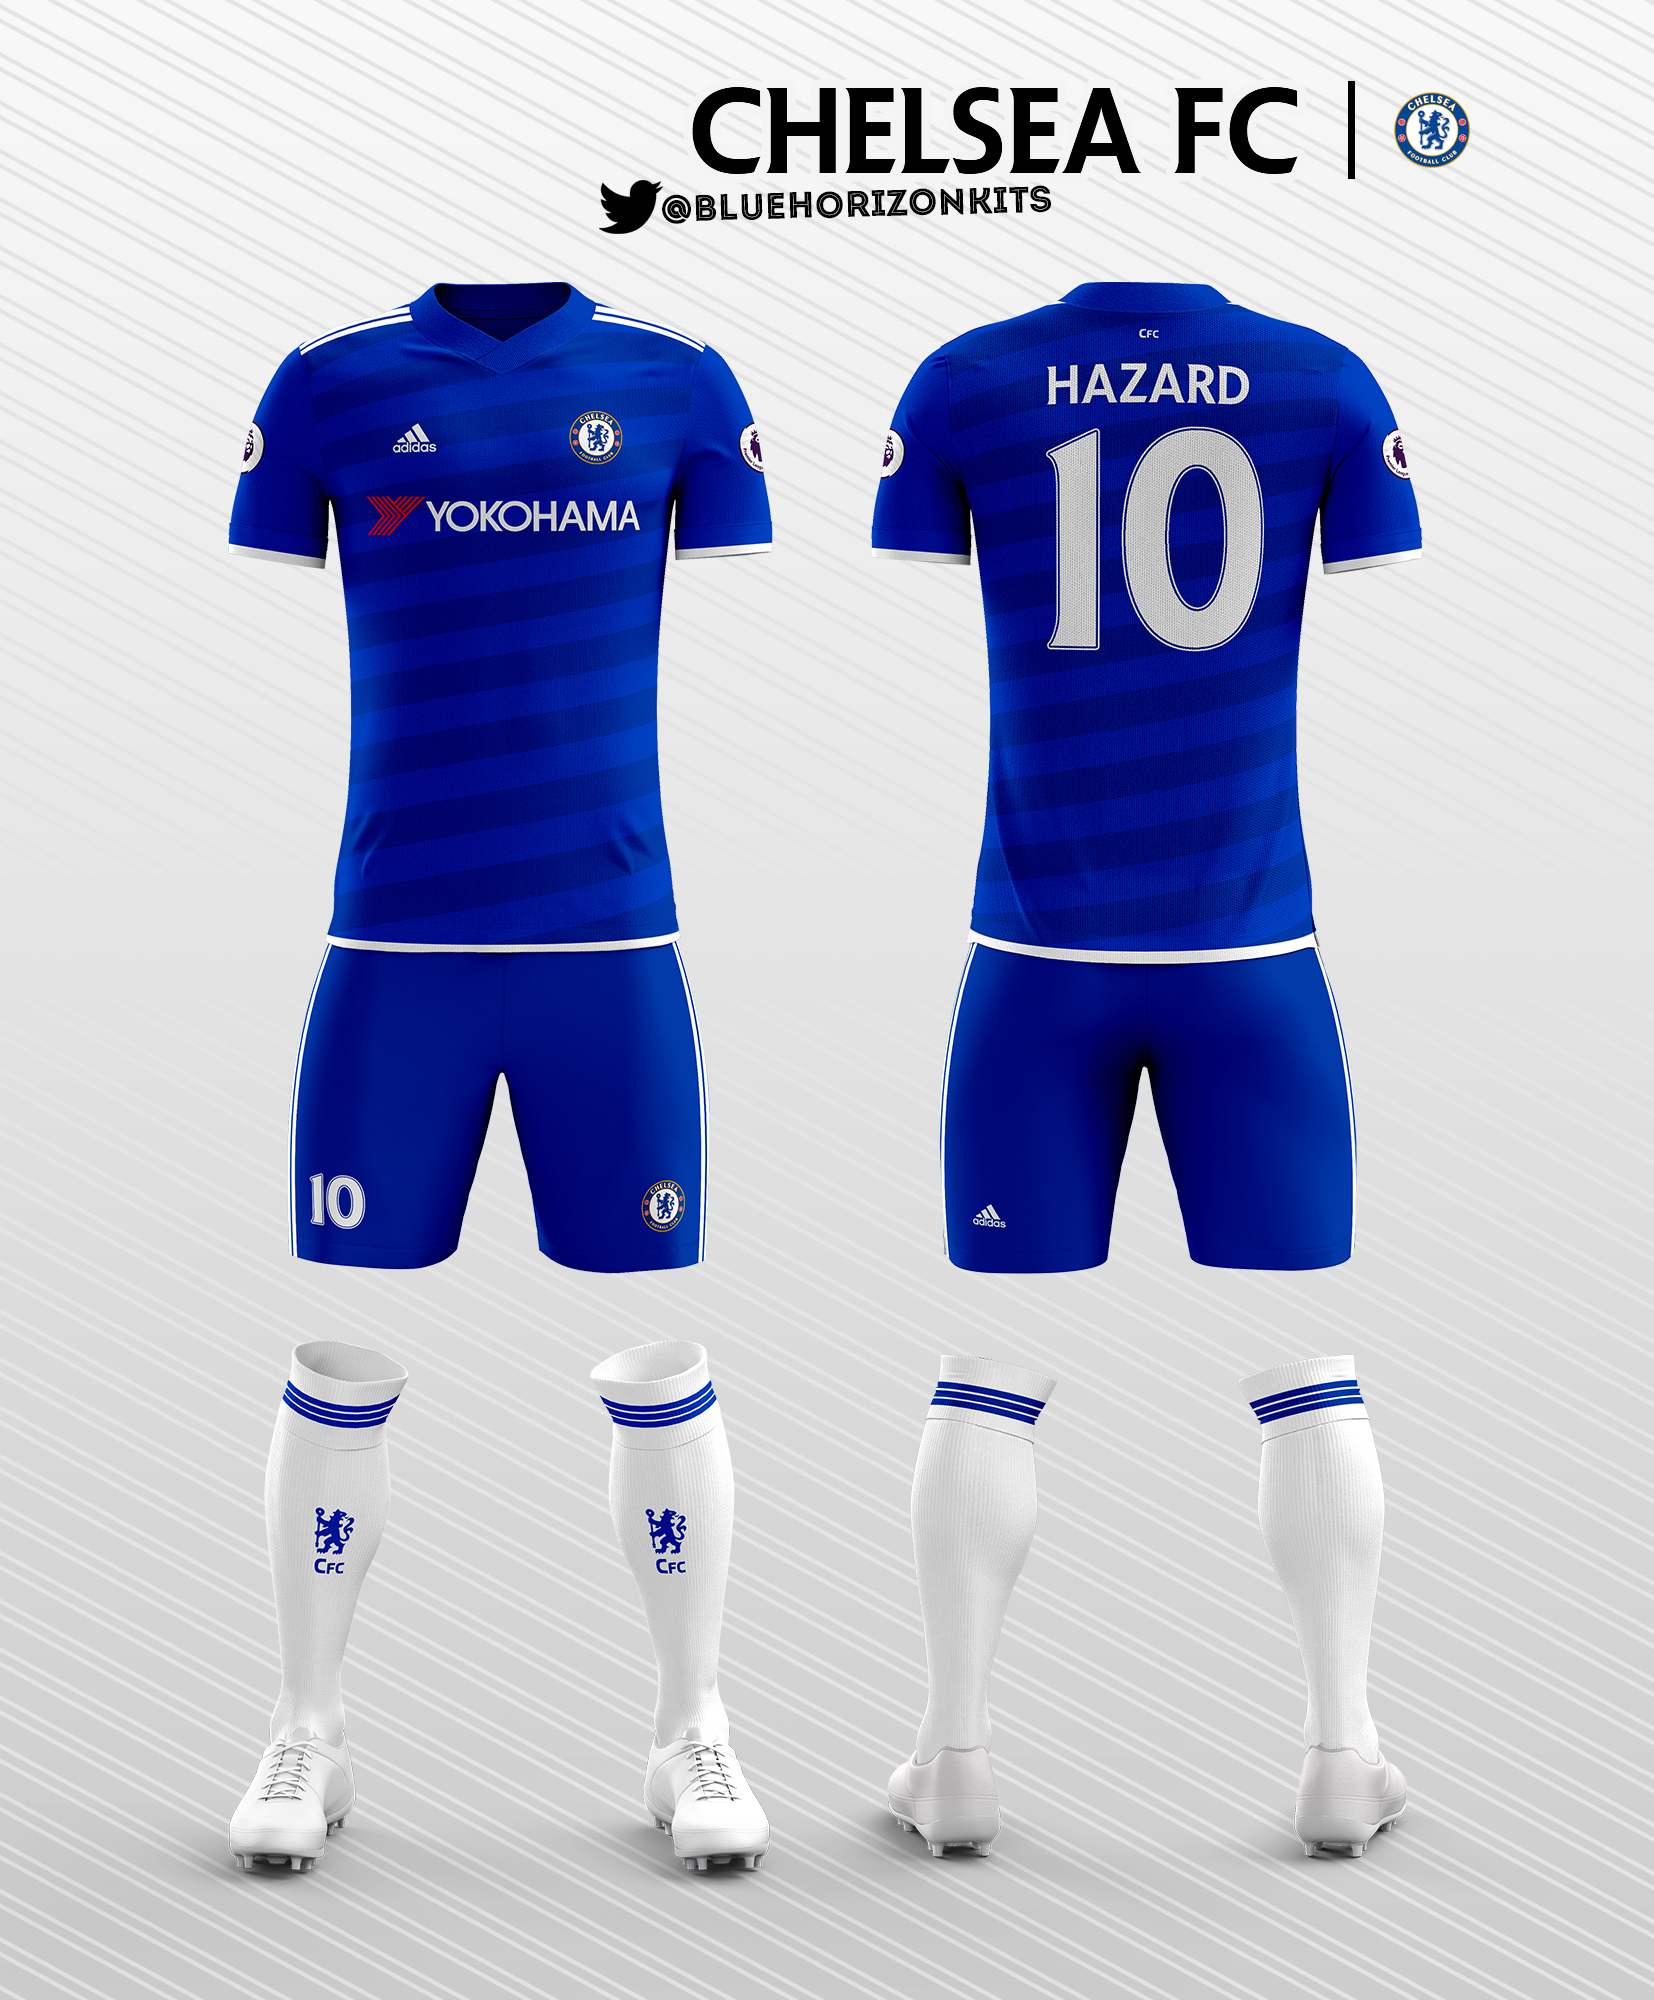 premium selection 09d27 52fb0 Chelsea FC Home Kit 2016-17 (Adidas)